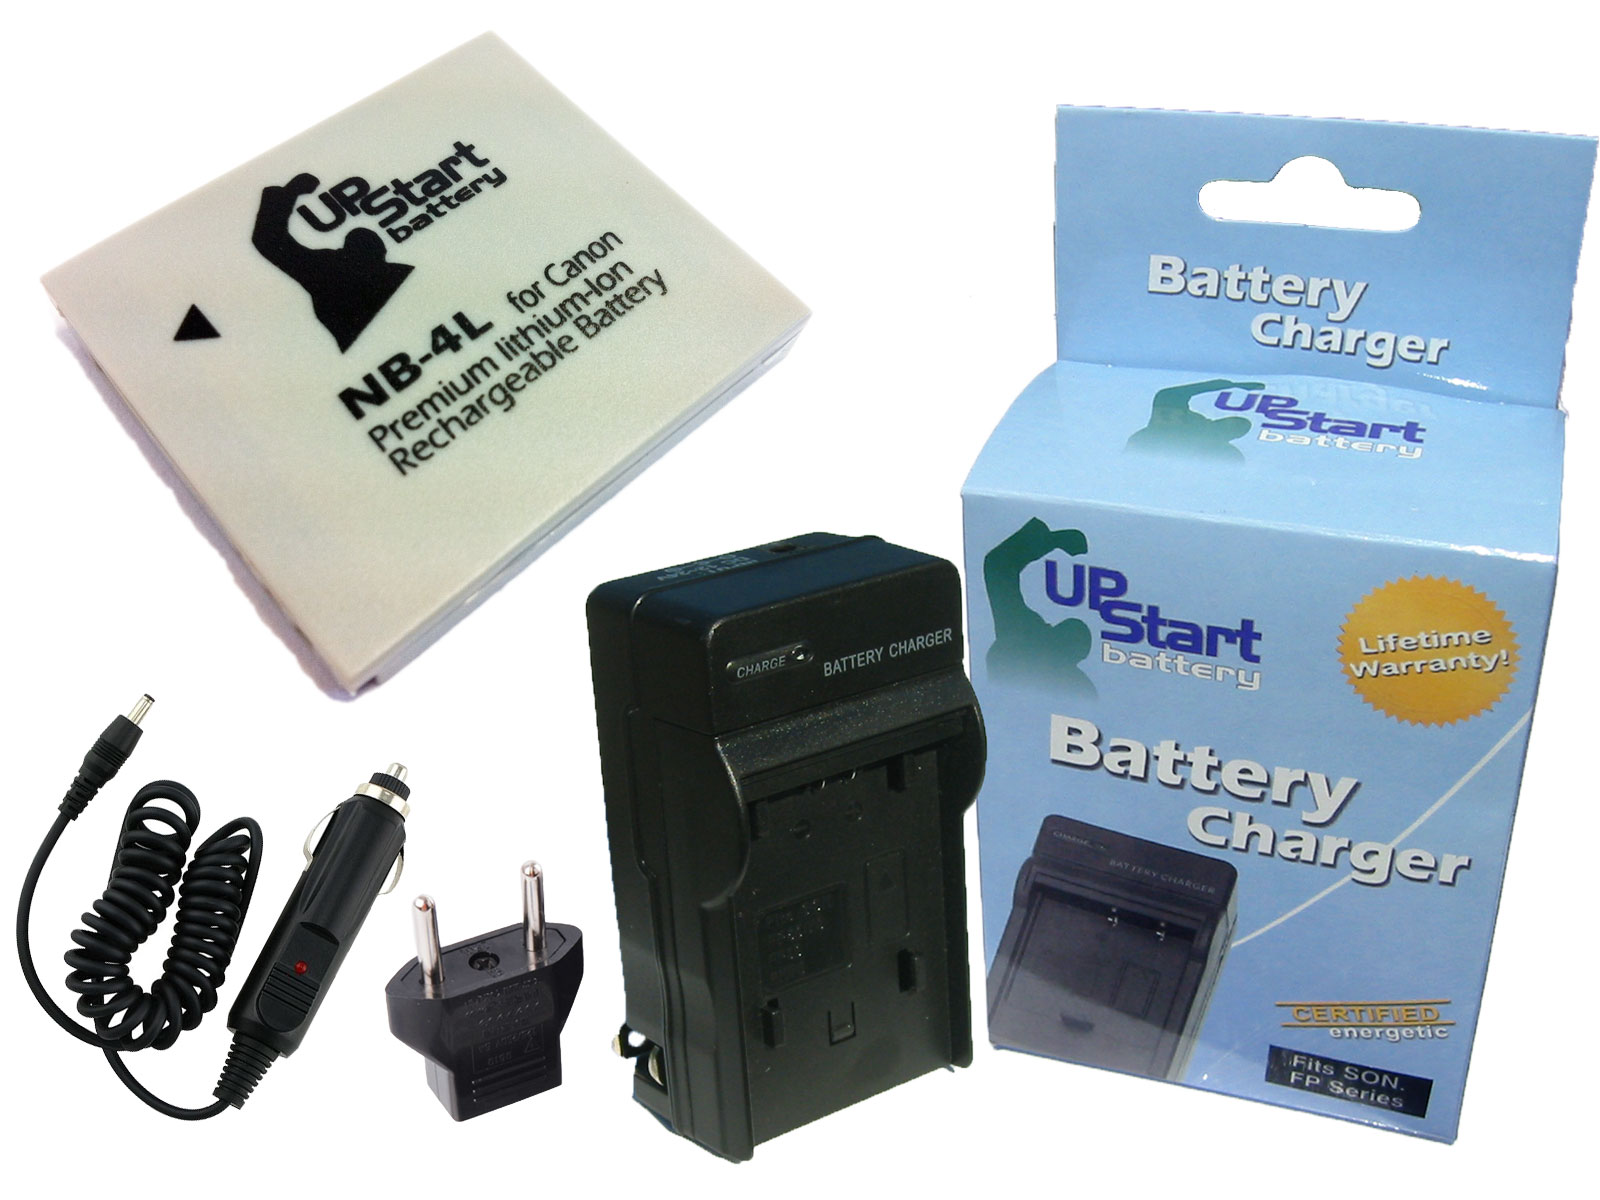 Canon PowerShot SD780 IS Battery and Charger with Car Plug and EU Adapter Replacement for Canon NB 4L Digital Camera Batteries and Chargers (890mAh,